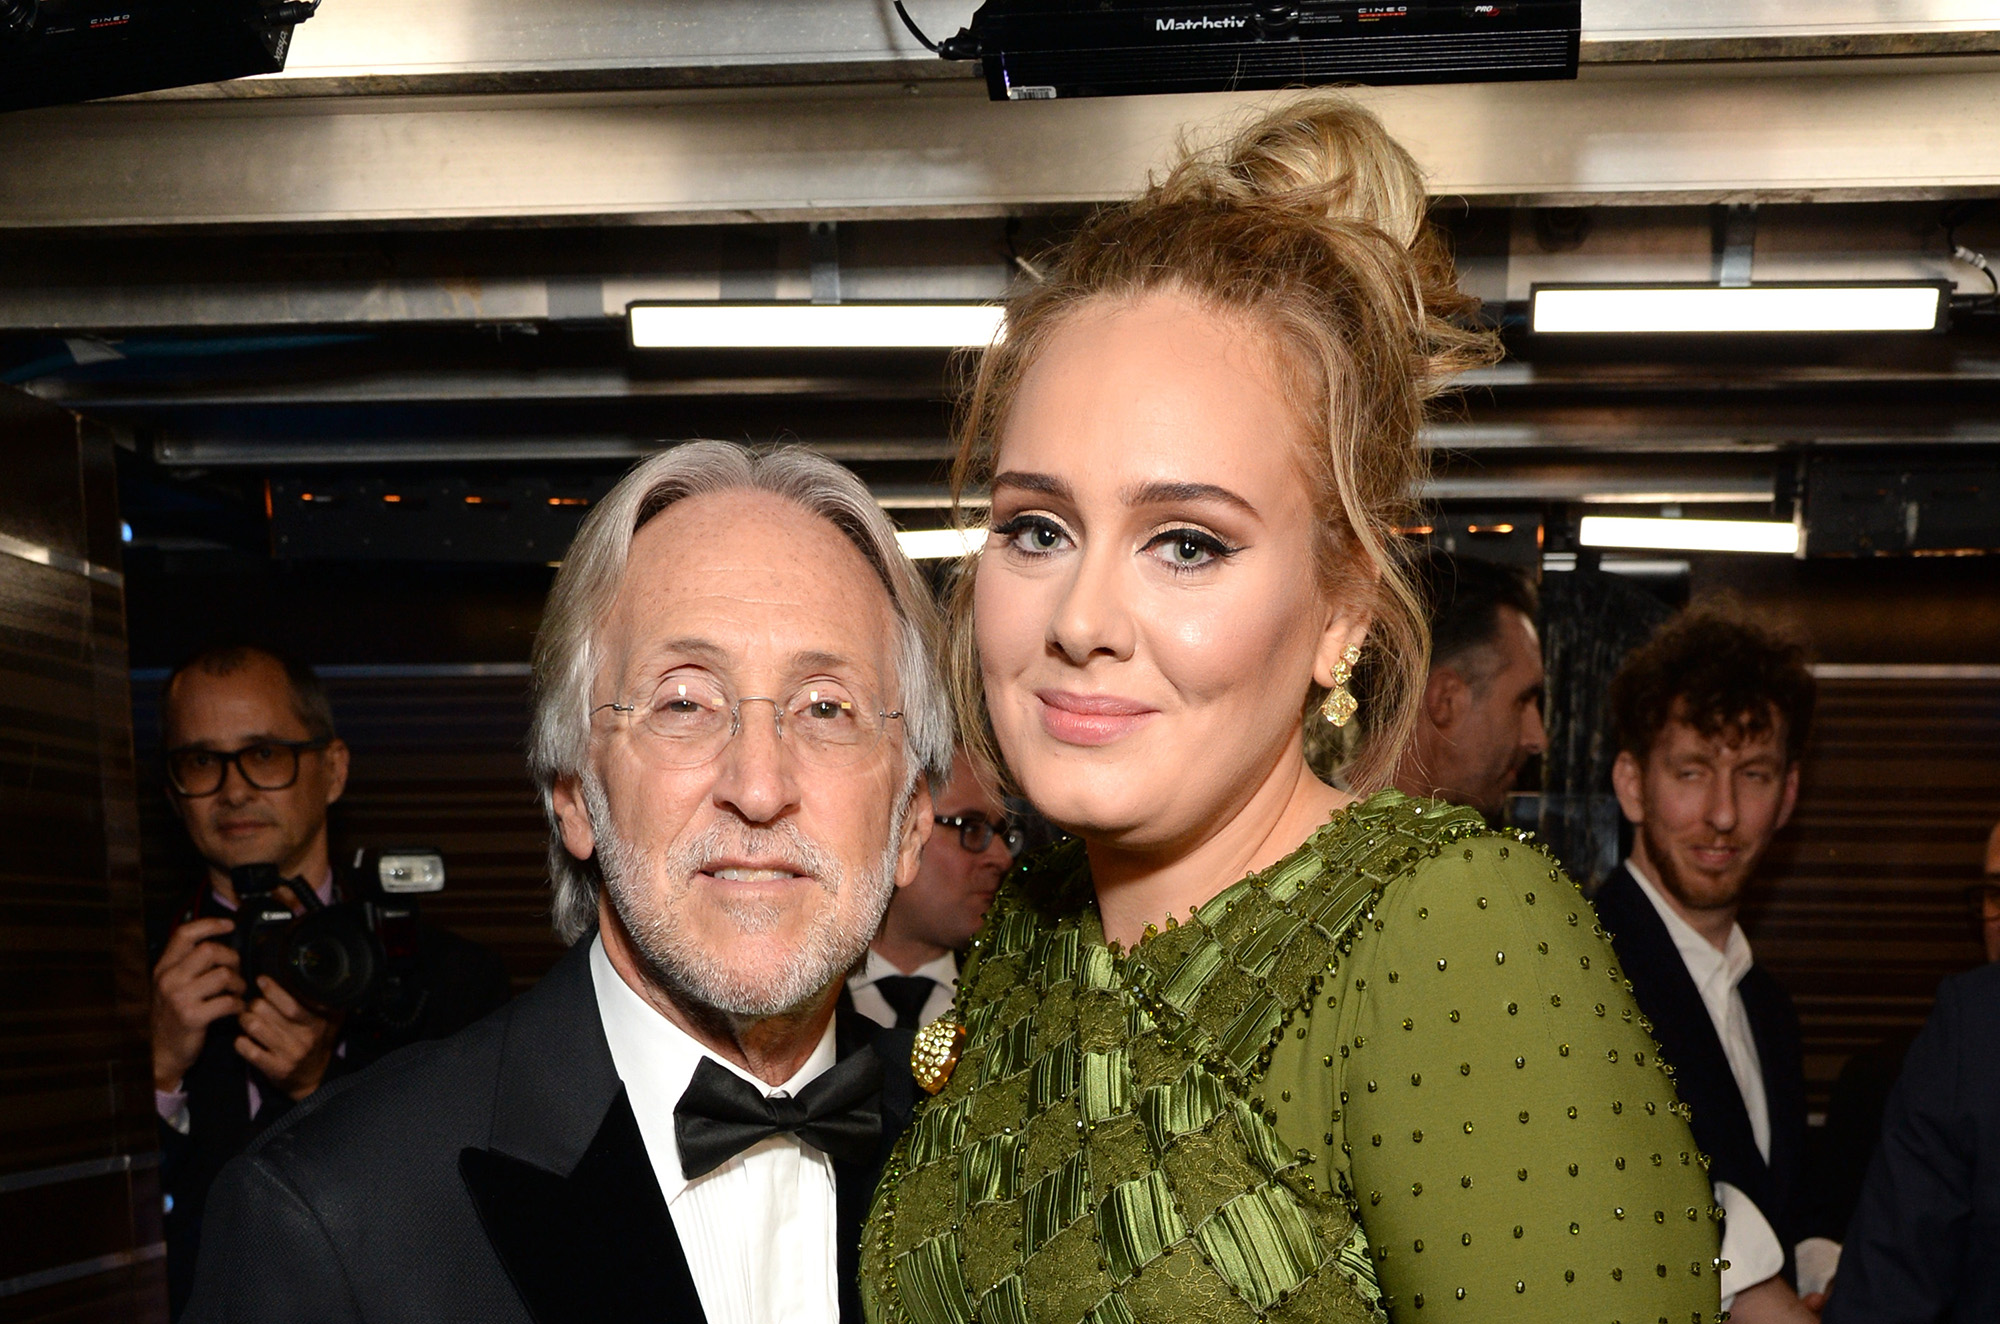 President/CEO of The Recording Academy and GRAMMY Foundation President/CEO Neil Portnow (L) and Adele backstage during during the The 59th GRAMMY Awards.